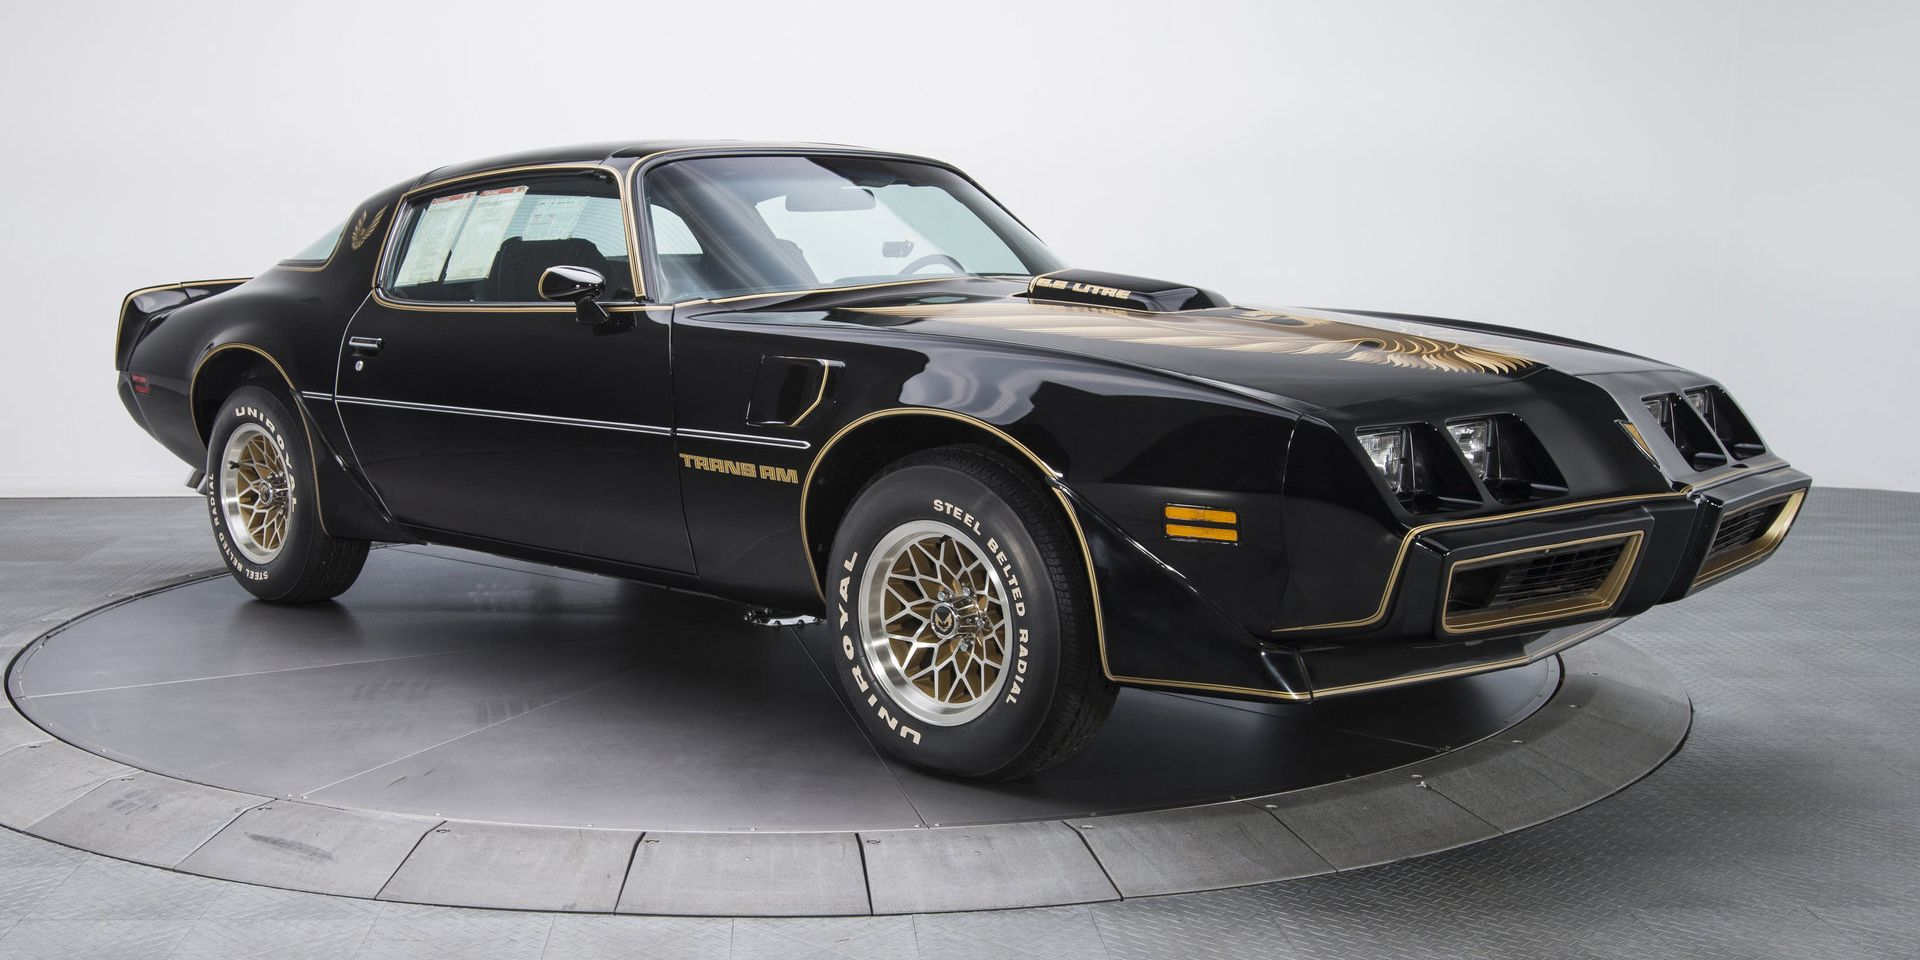 1979 Trans Am Picture This Brand New 1979 Pontiac Trans Am Can Be Yours For 160 000